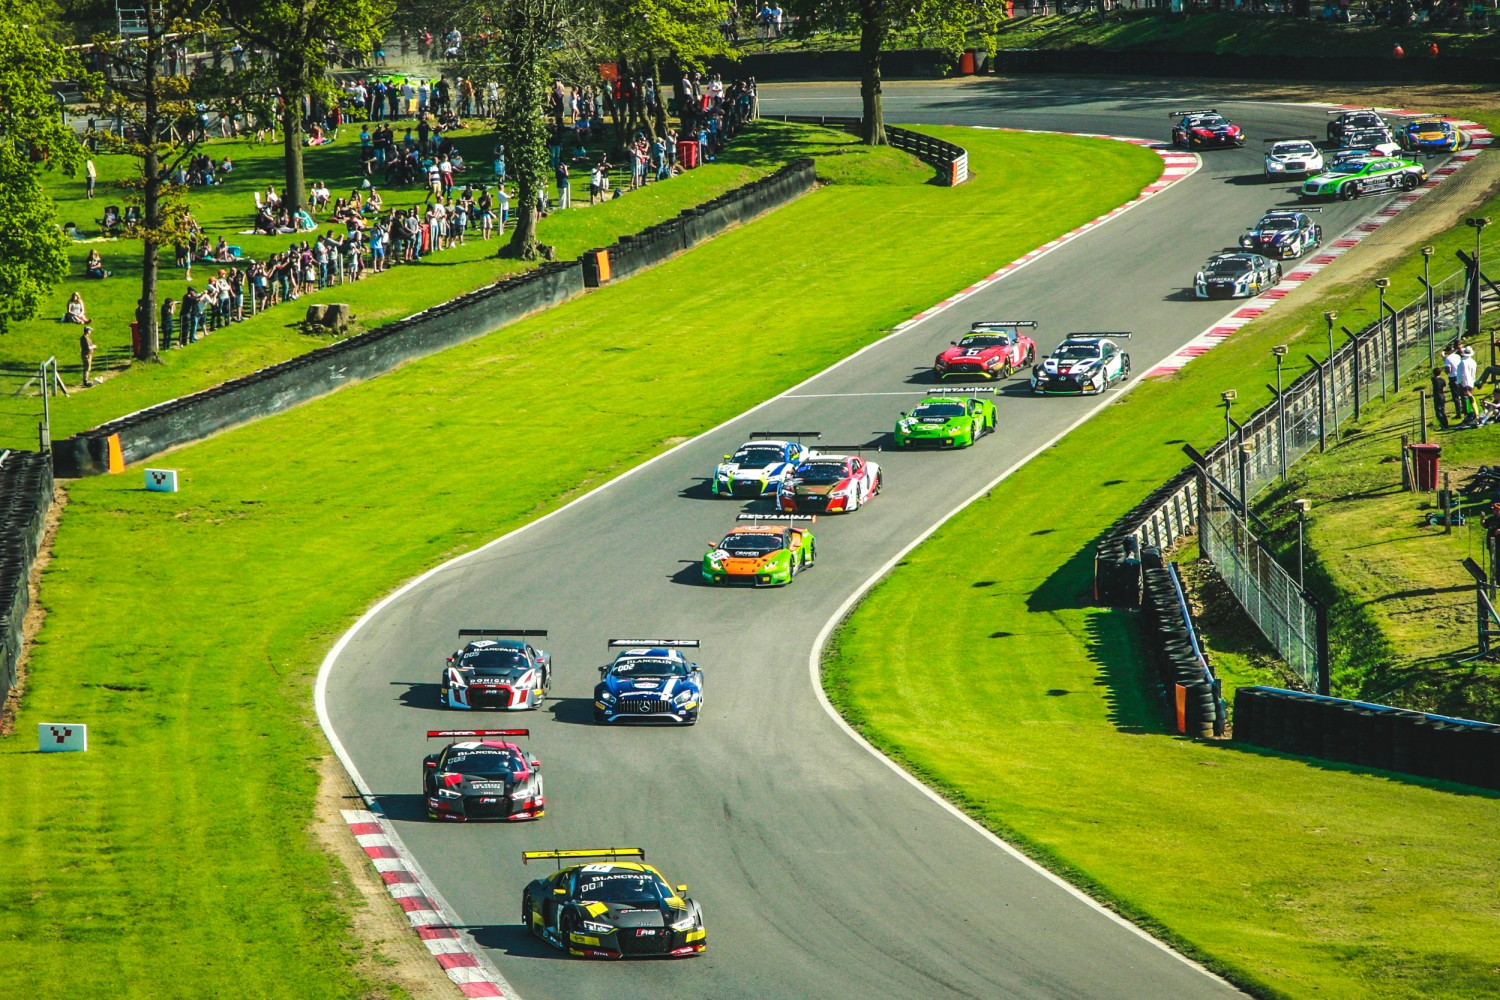 Tickets on sale for Brands Hatch Event